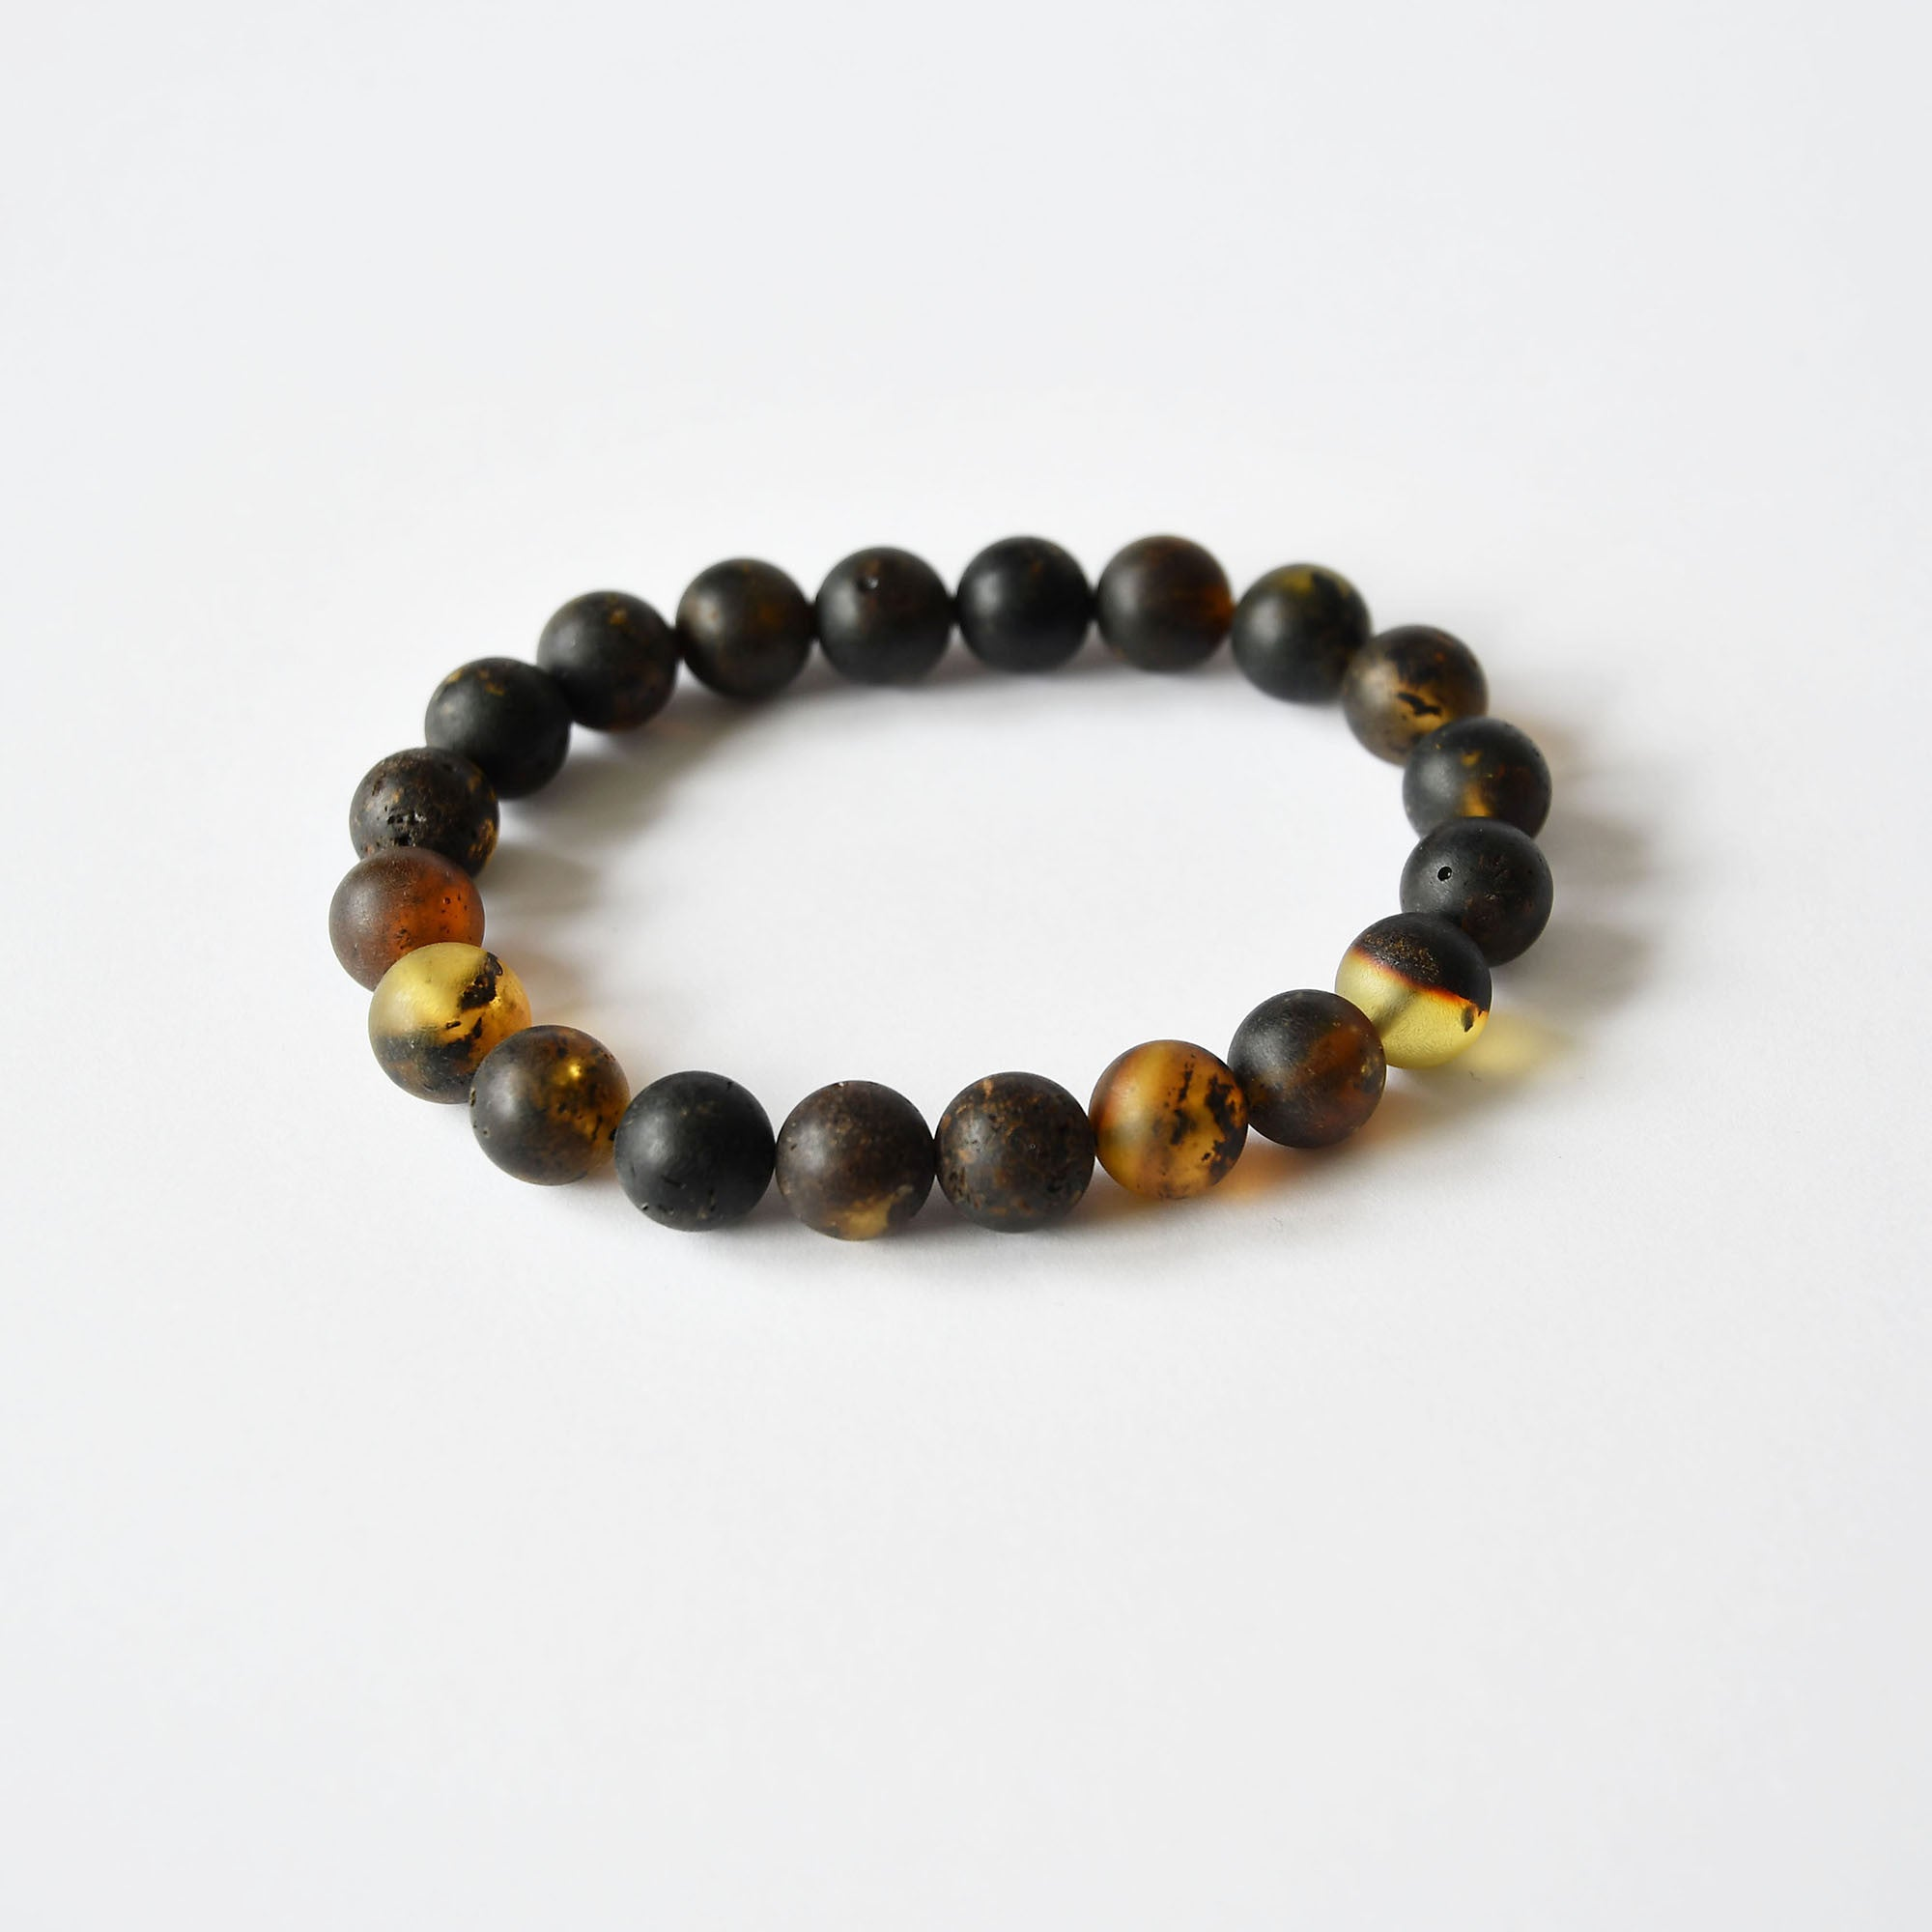 Black amber bracelet of round beads with elastic band